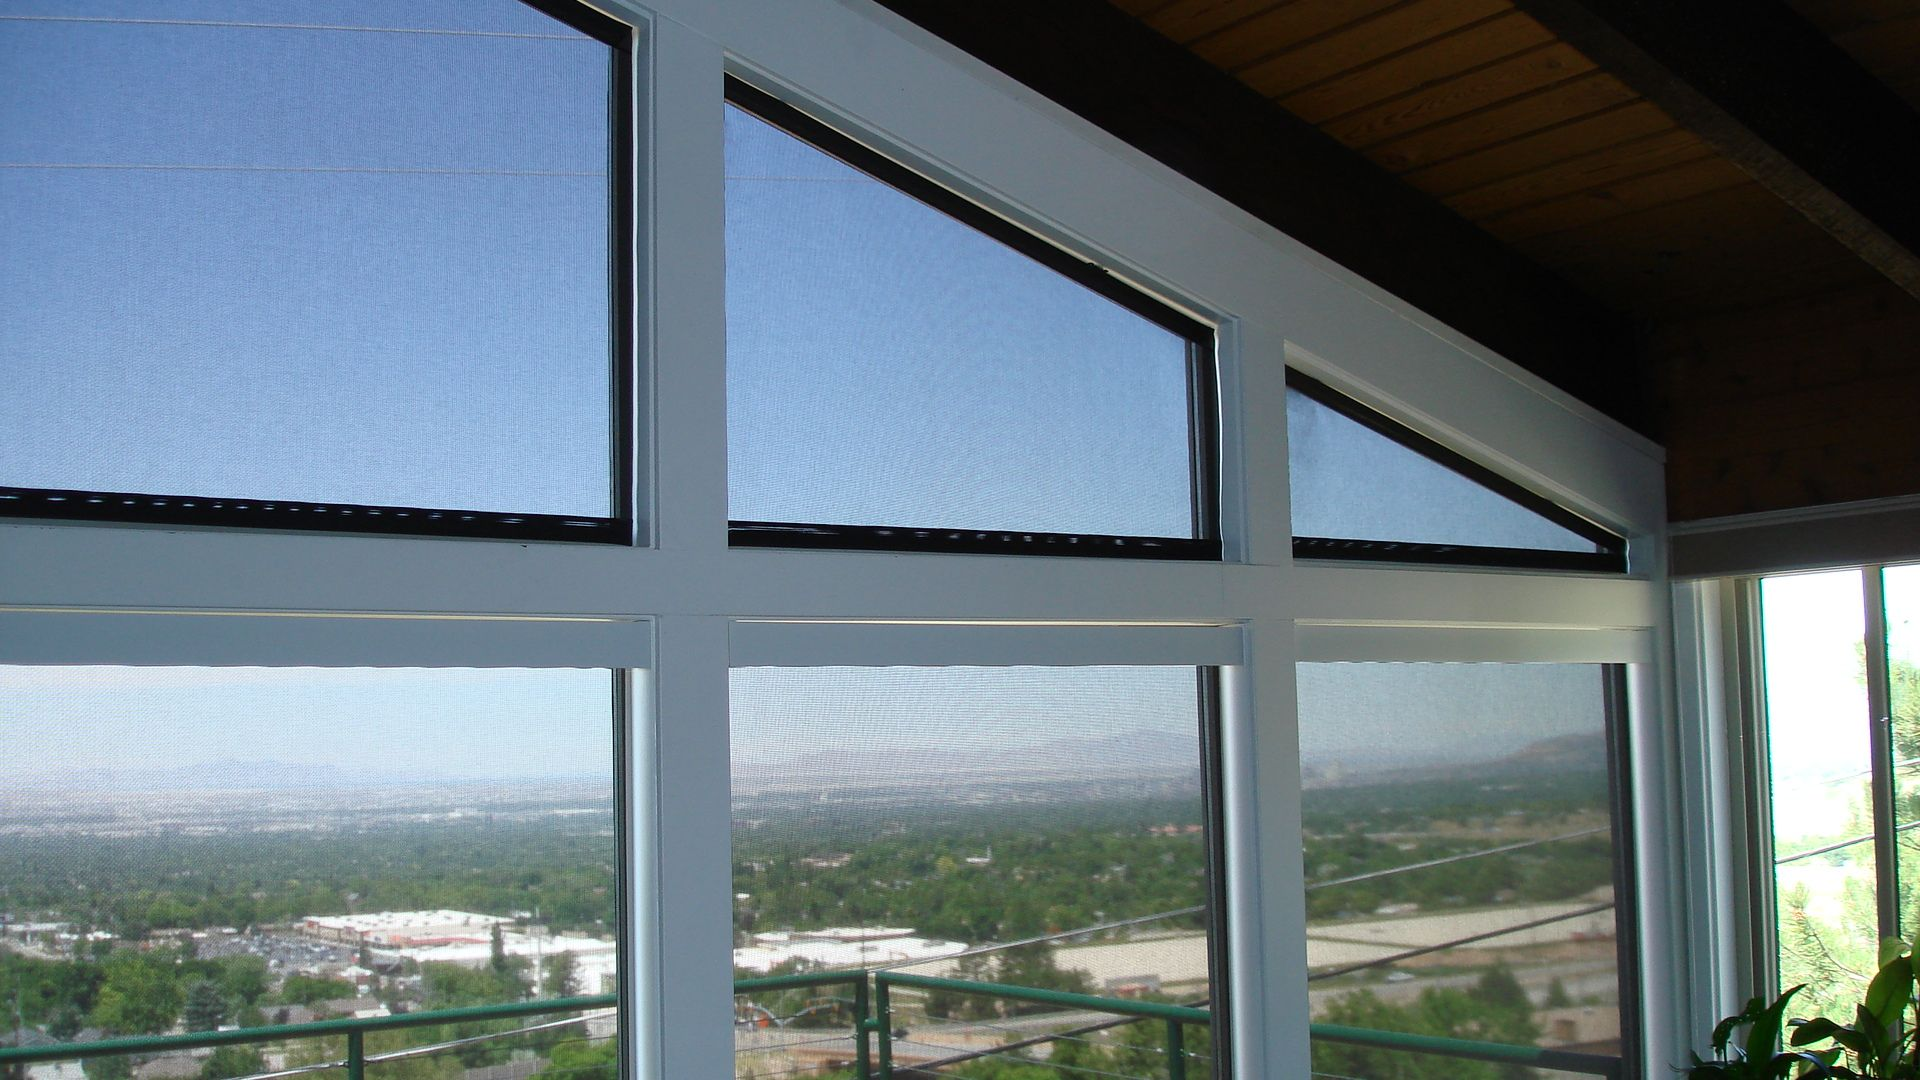 Our custom solar shades provide a great solution for - Interior solutions salt lake city ...